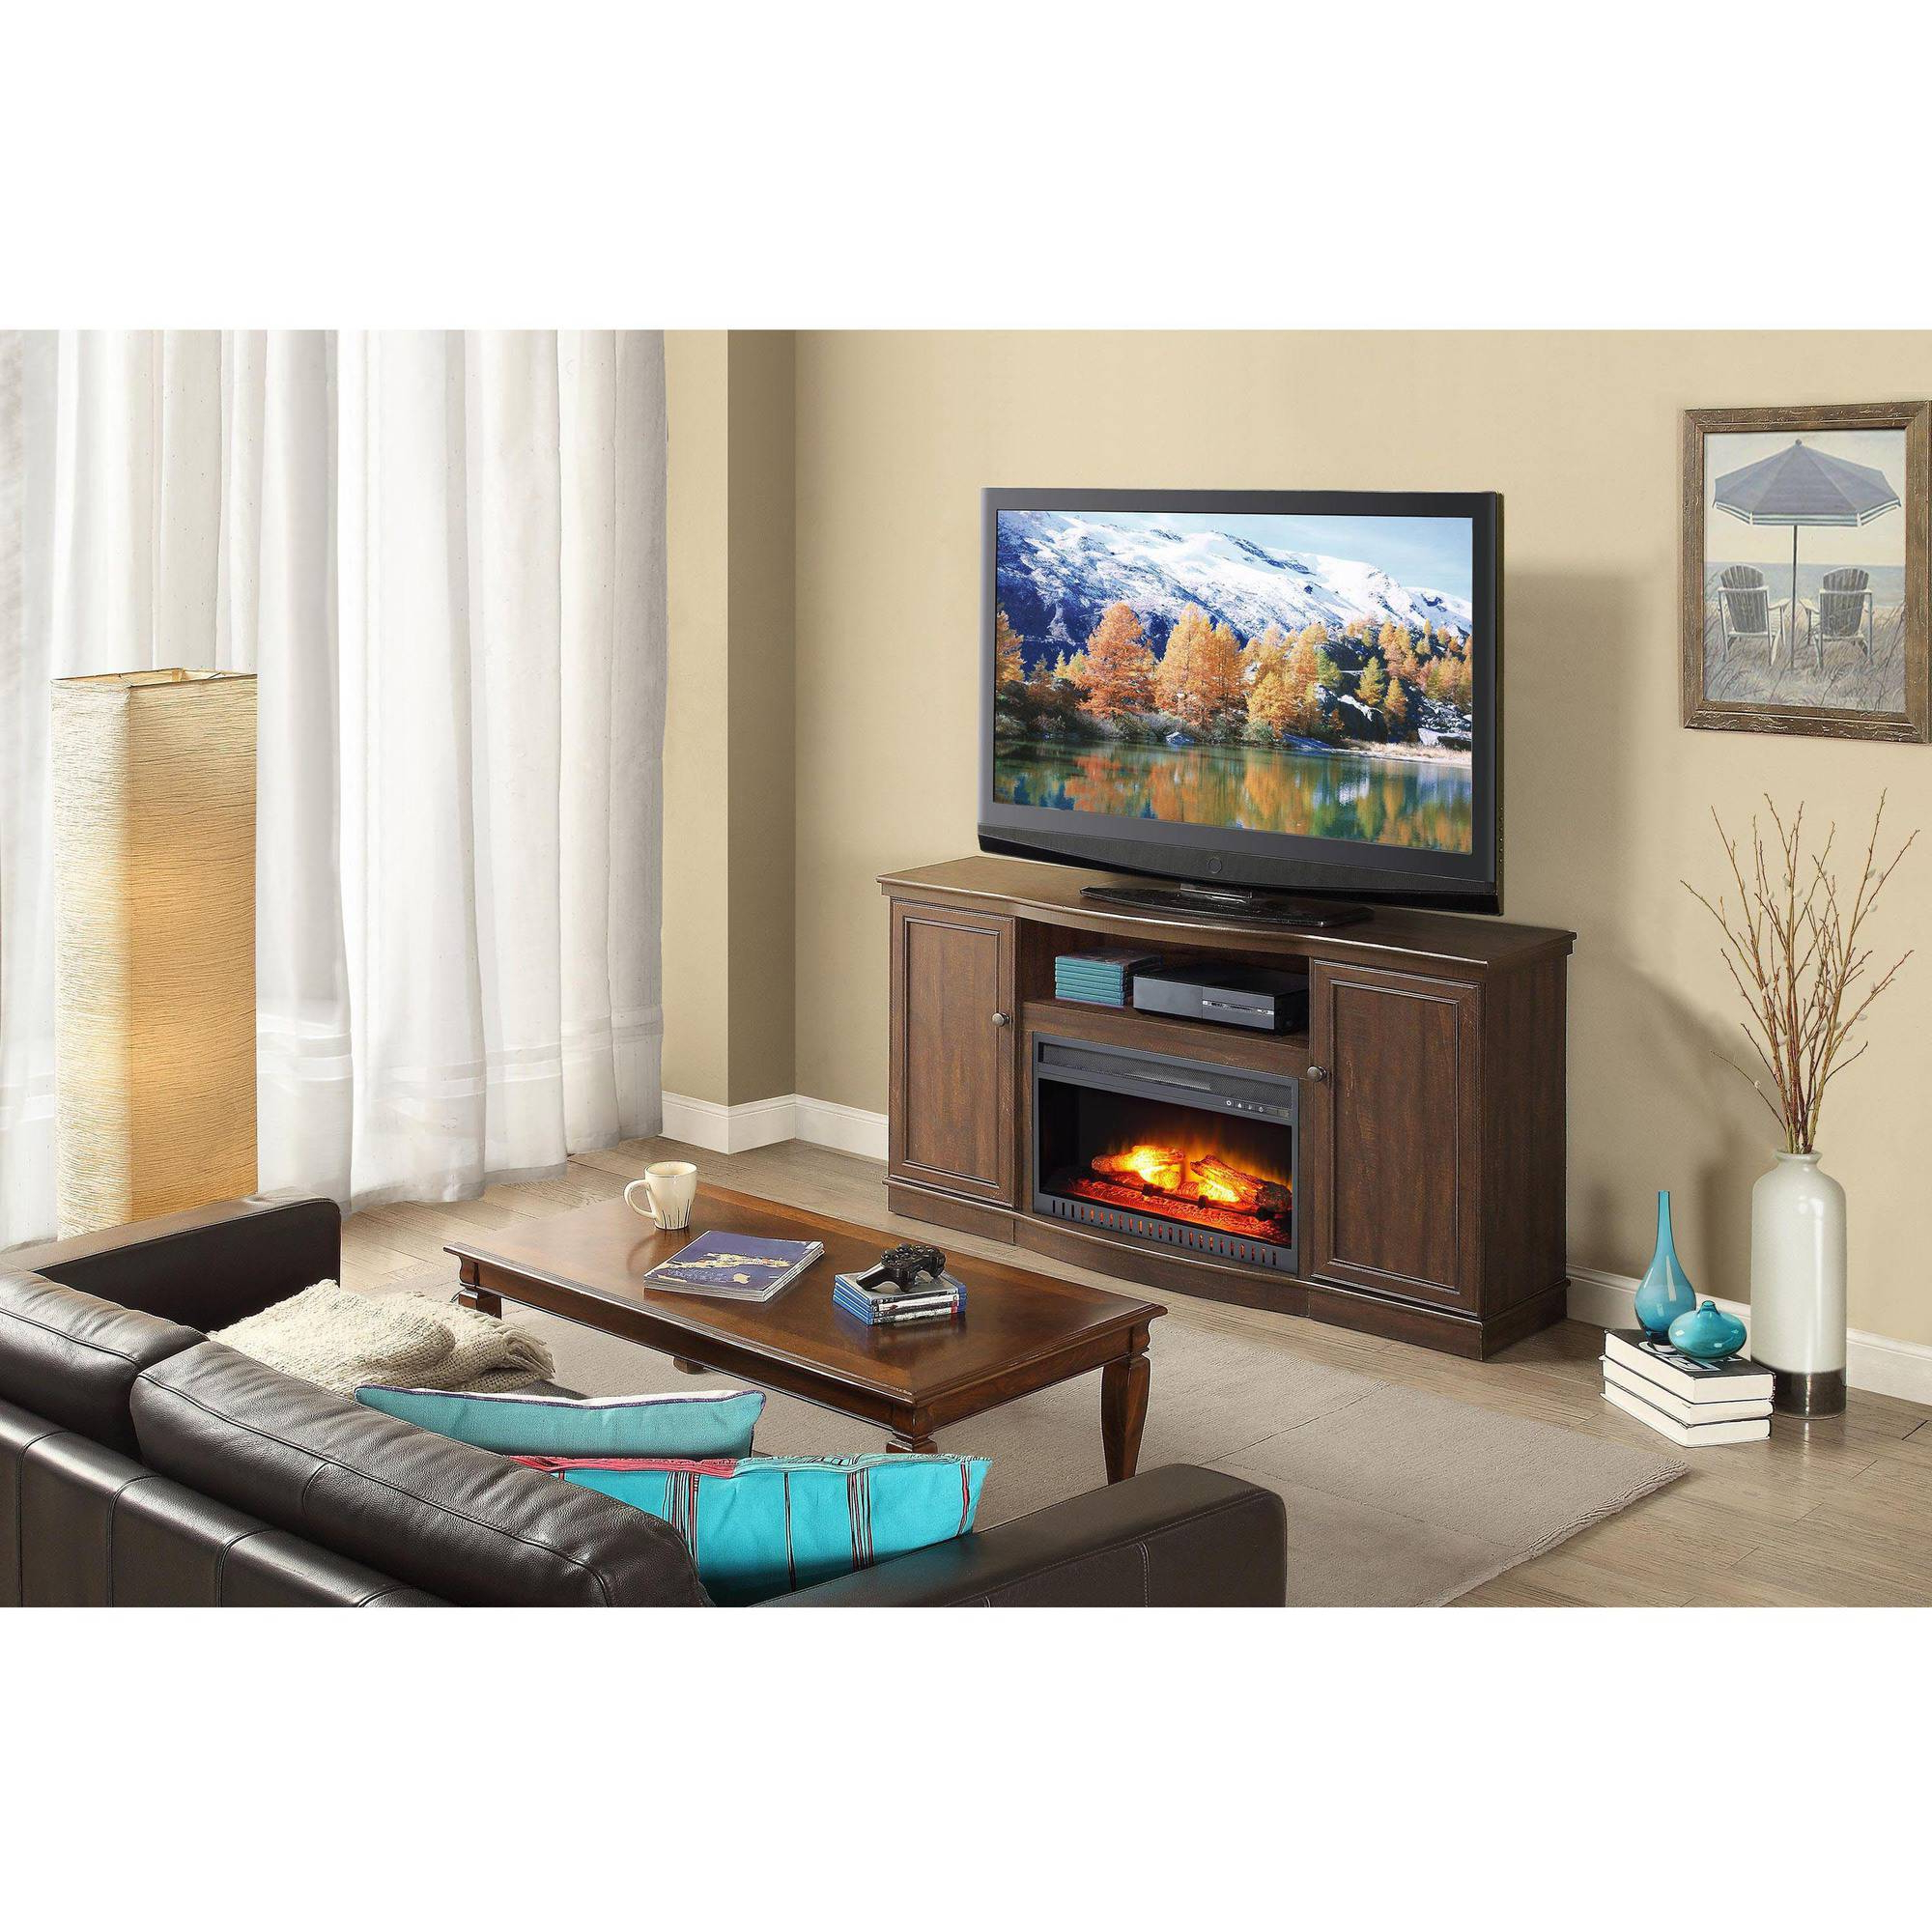 2018 Whalen Media Fireplace For Your Home Television Stand Fits Tvs Up To Inside Walton 72 Inch Tv Stands (View 3 of 20)